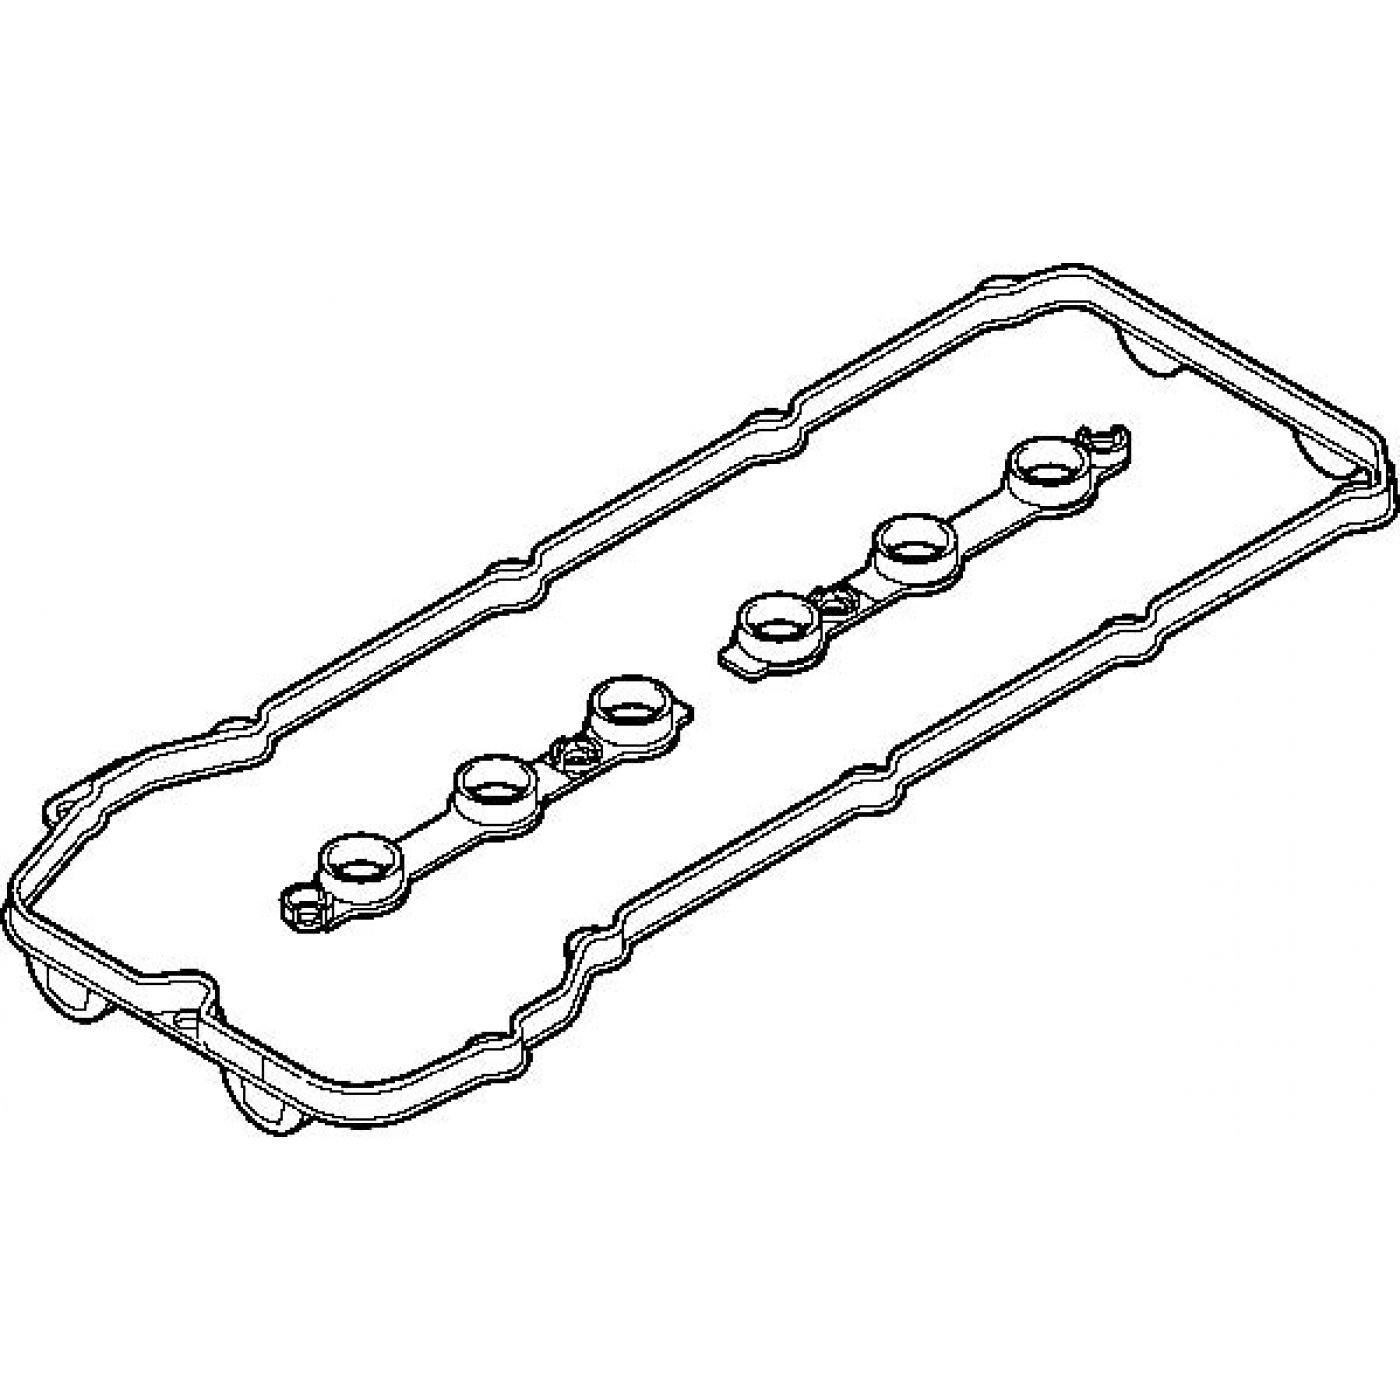 Elring Gasket Set Valve Cover For Bmw M54 From Yr 10